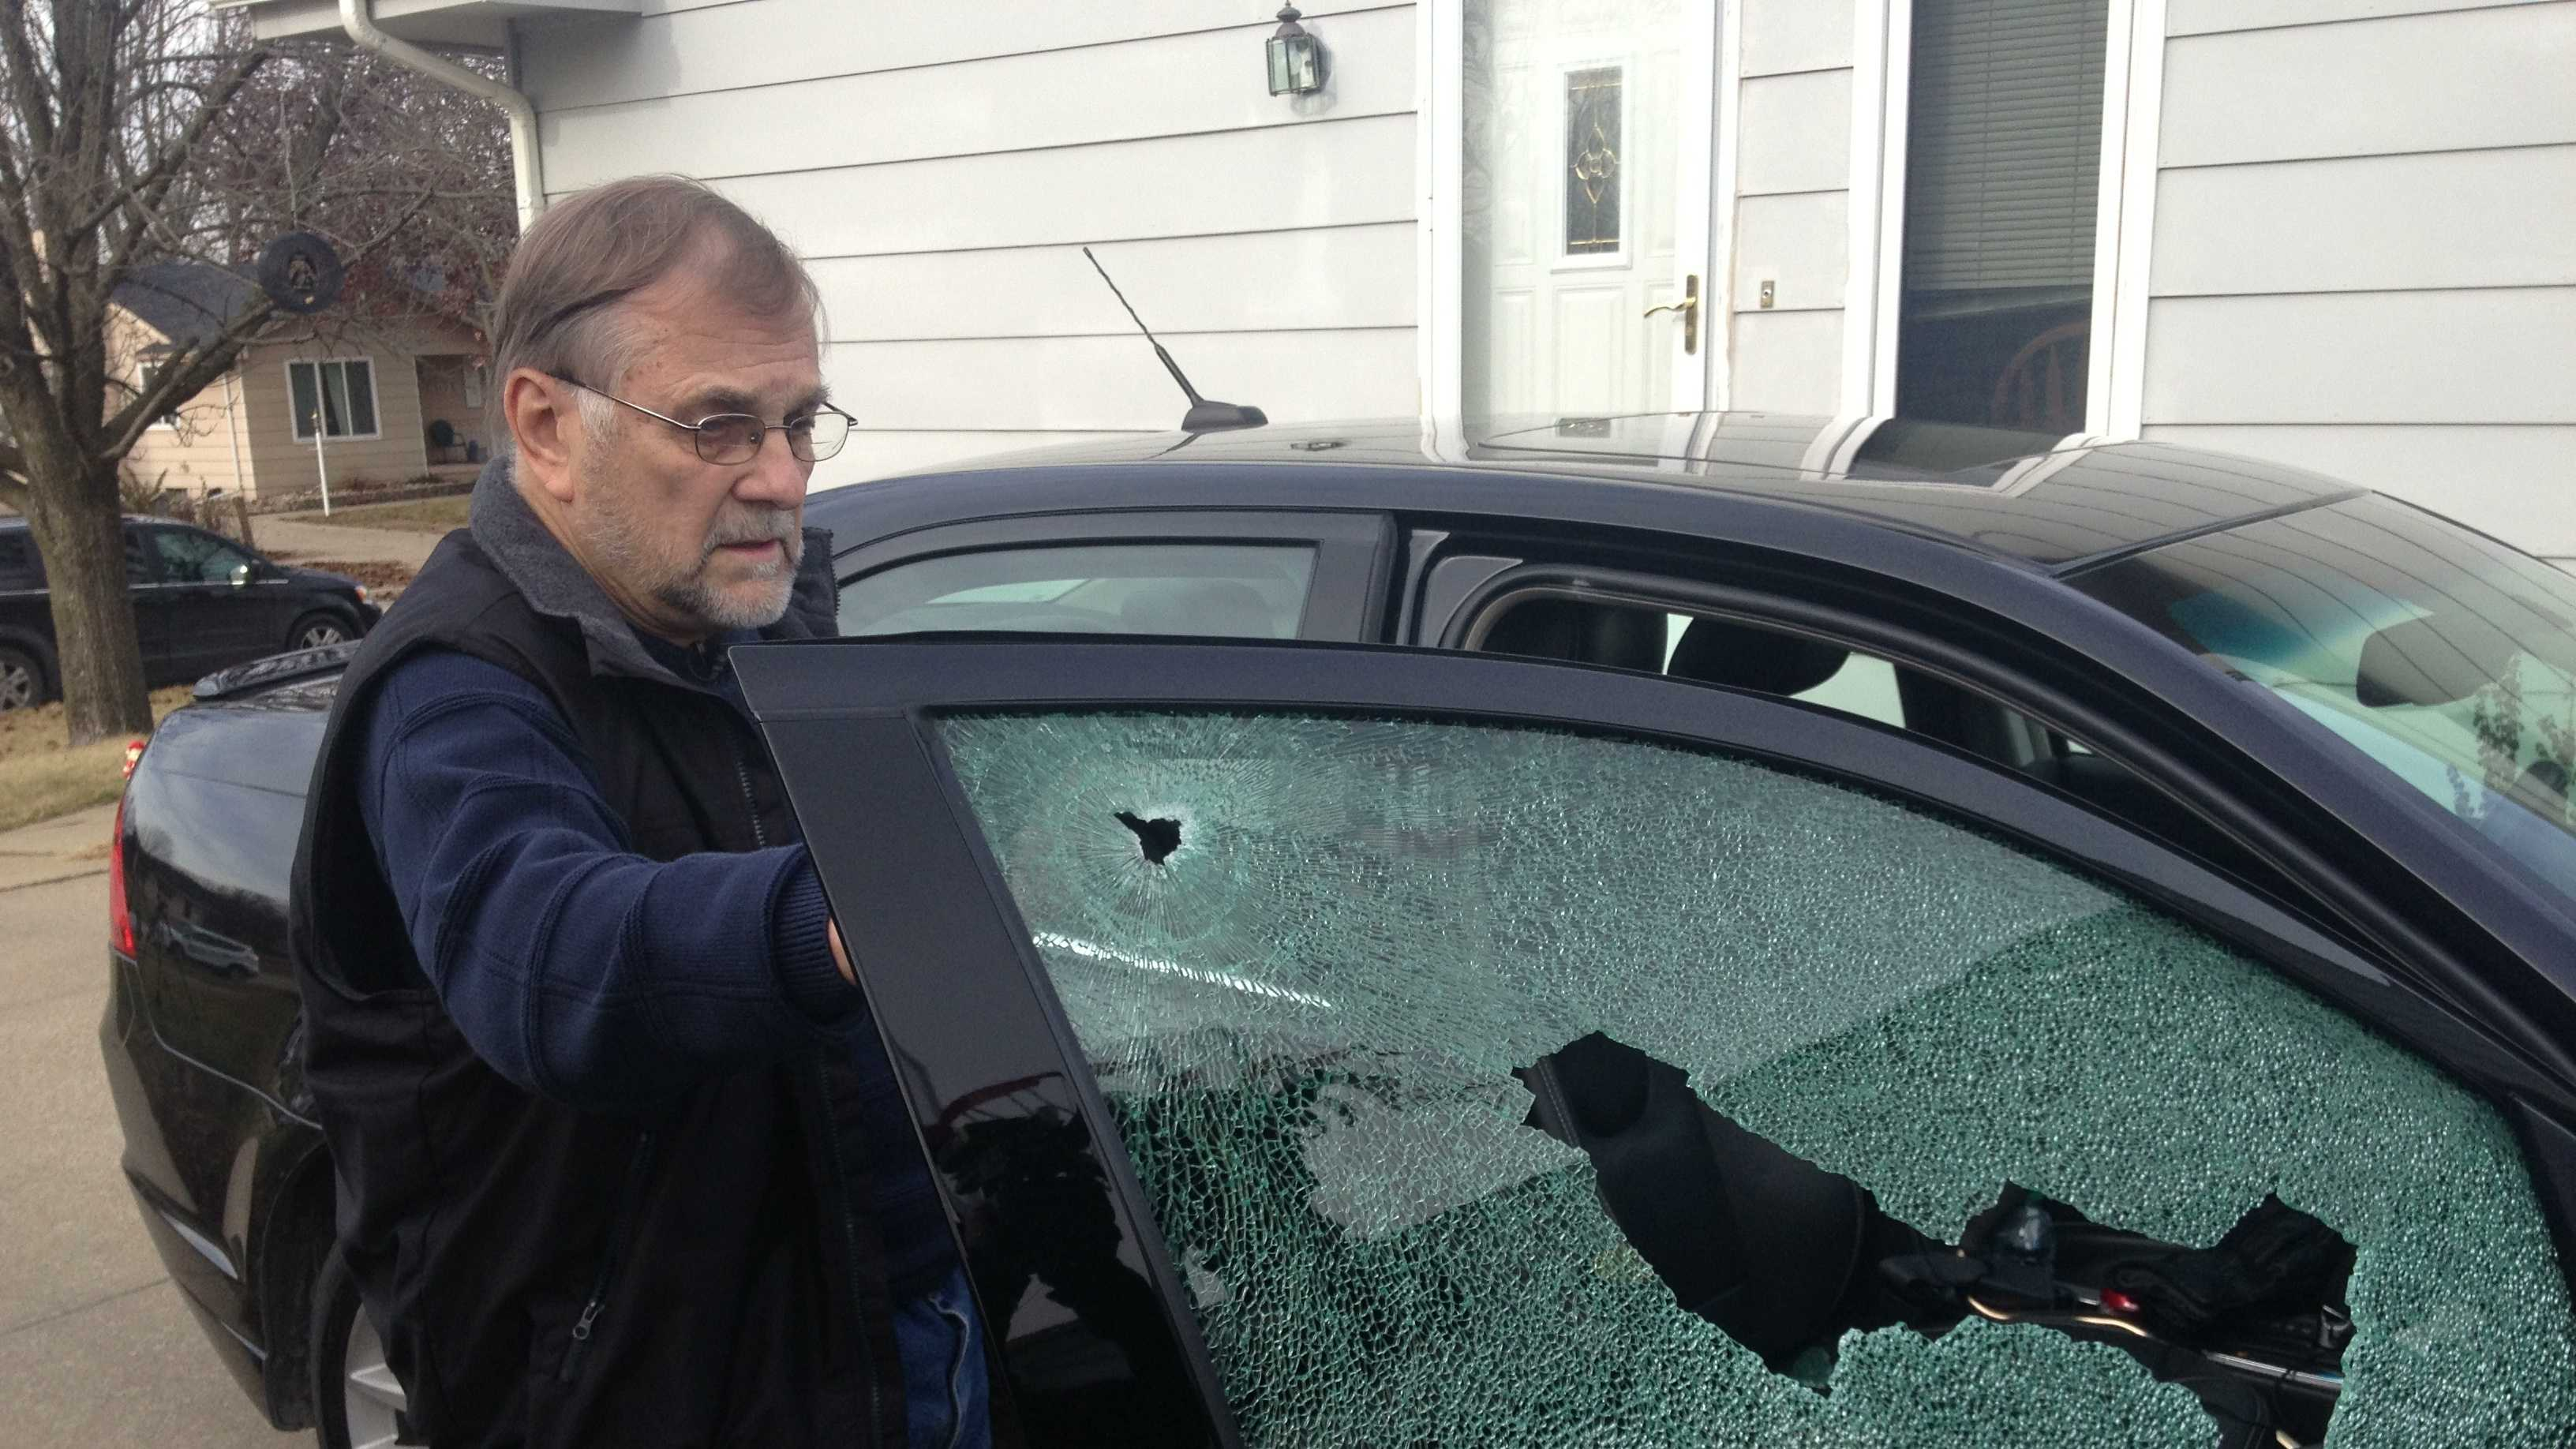 Larry Chiles shows KCCI his car with window shot out.